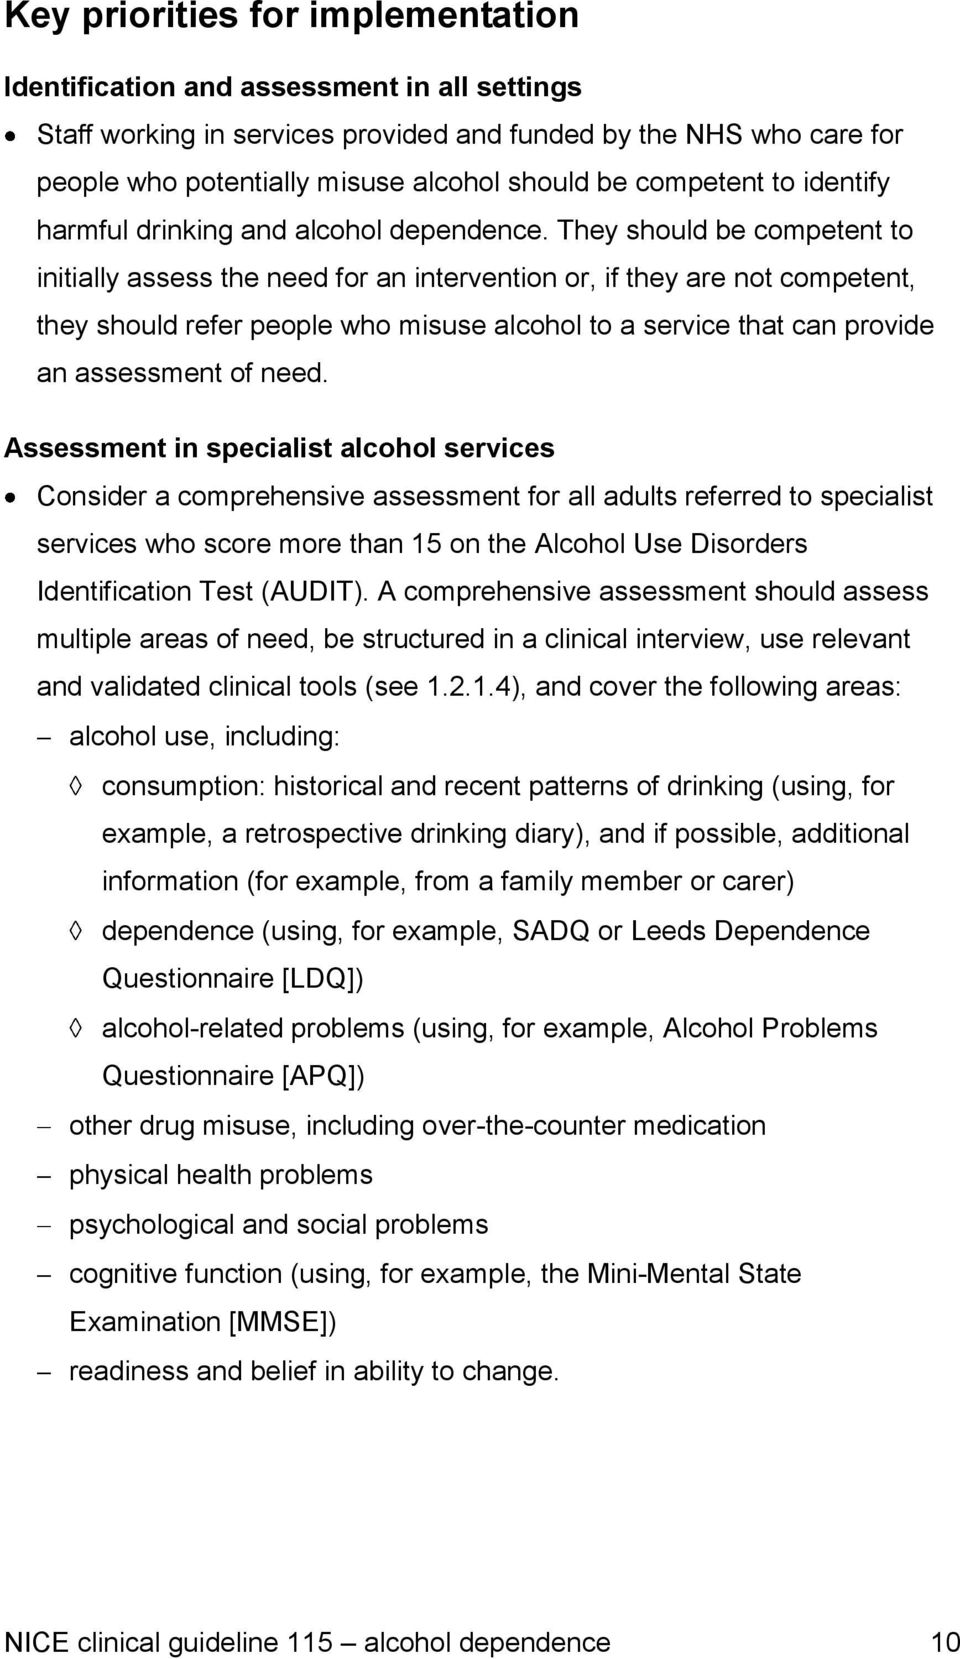 They should be competent to initially assess the need for an intervention or, if they are not competent, they should refer people who misuse alcohol to a service that can provide an assessment of